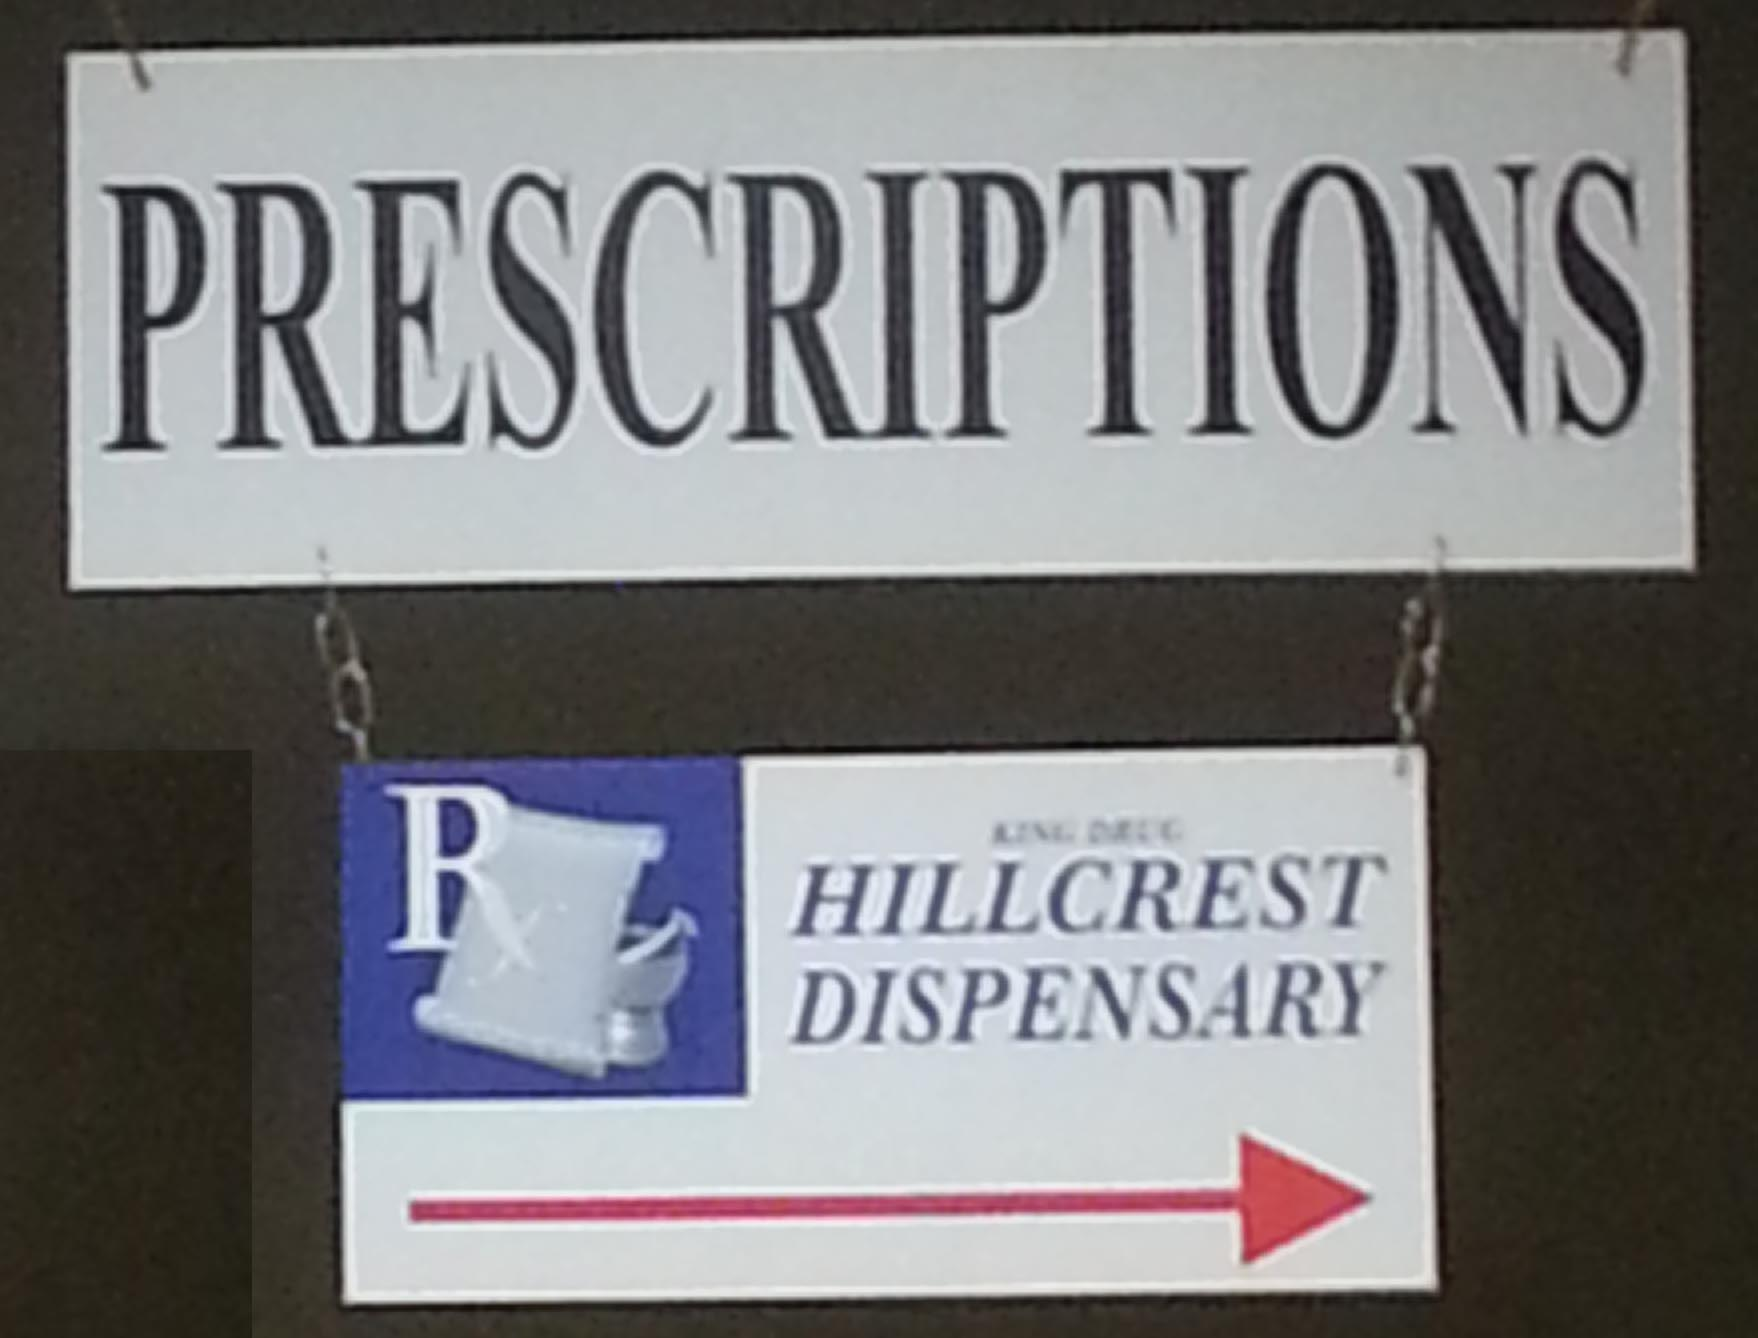 picture of pharmacy sign